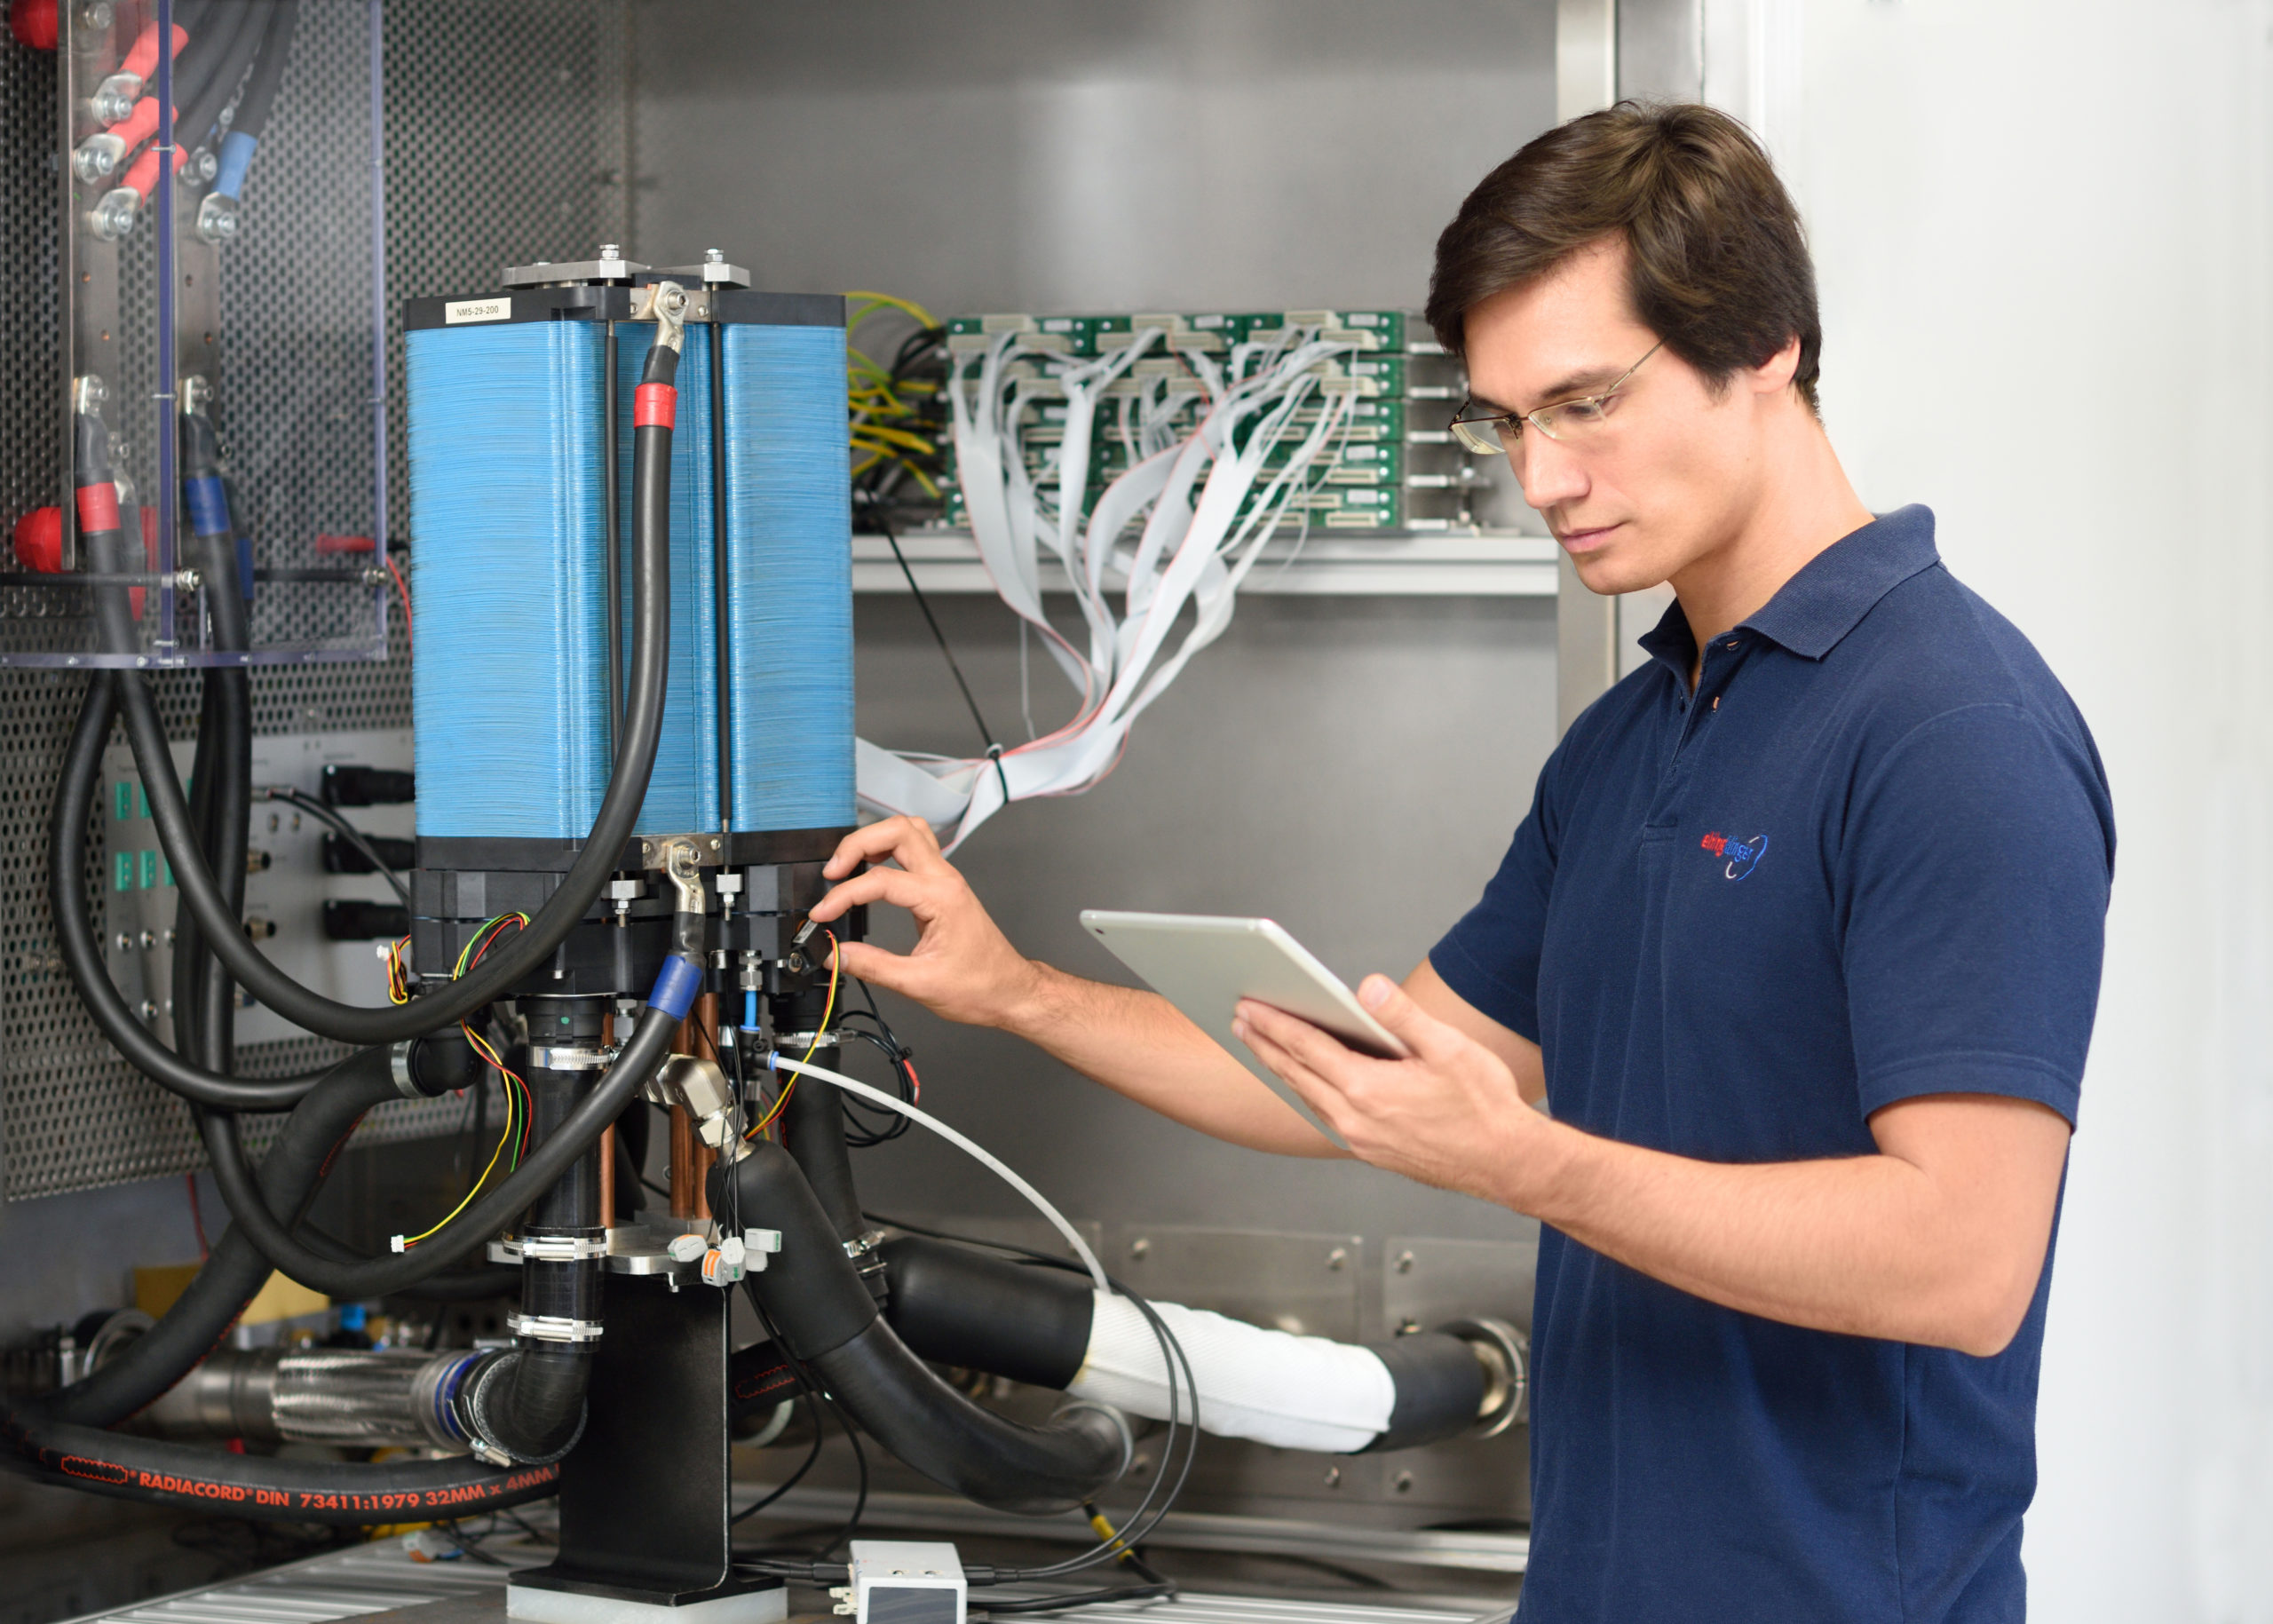 ElringKlinger hydrogen fuel cells to be used in zepp.solutions hydrogen fuel cell system